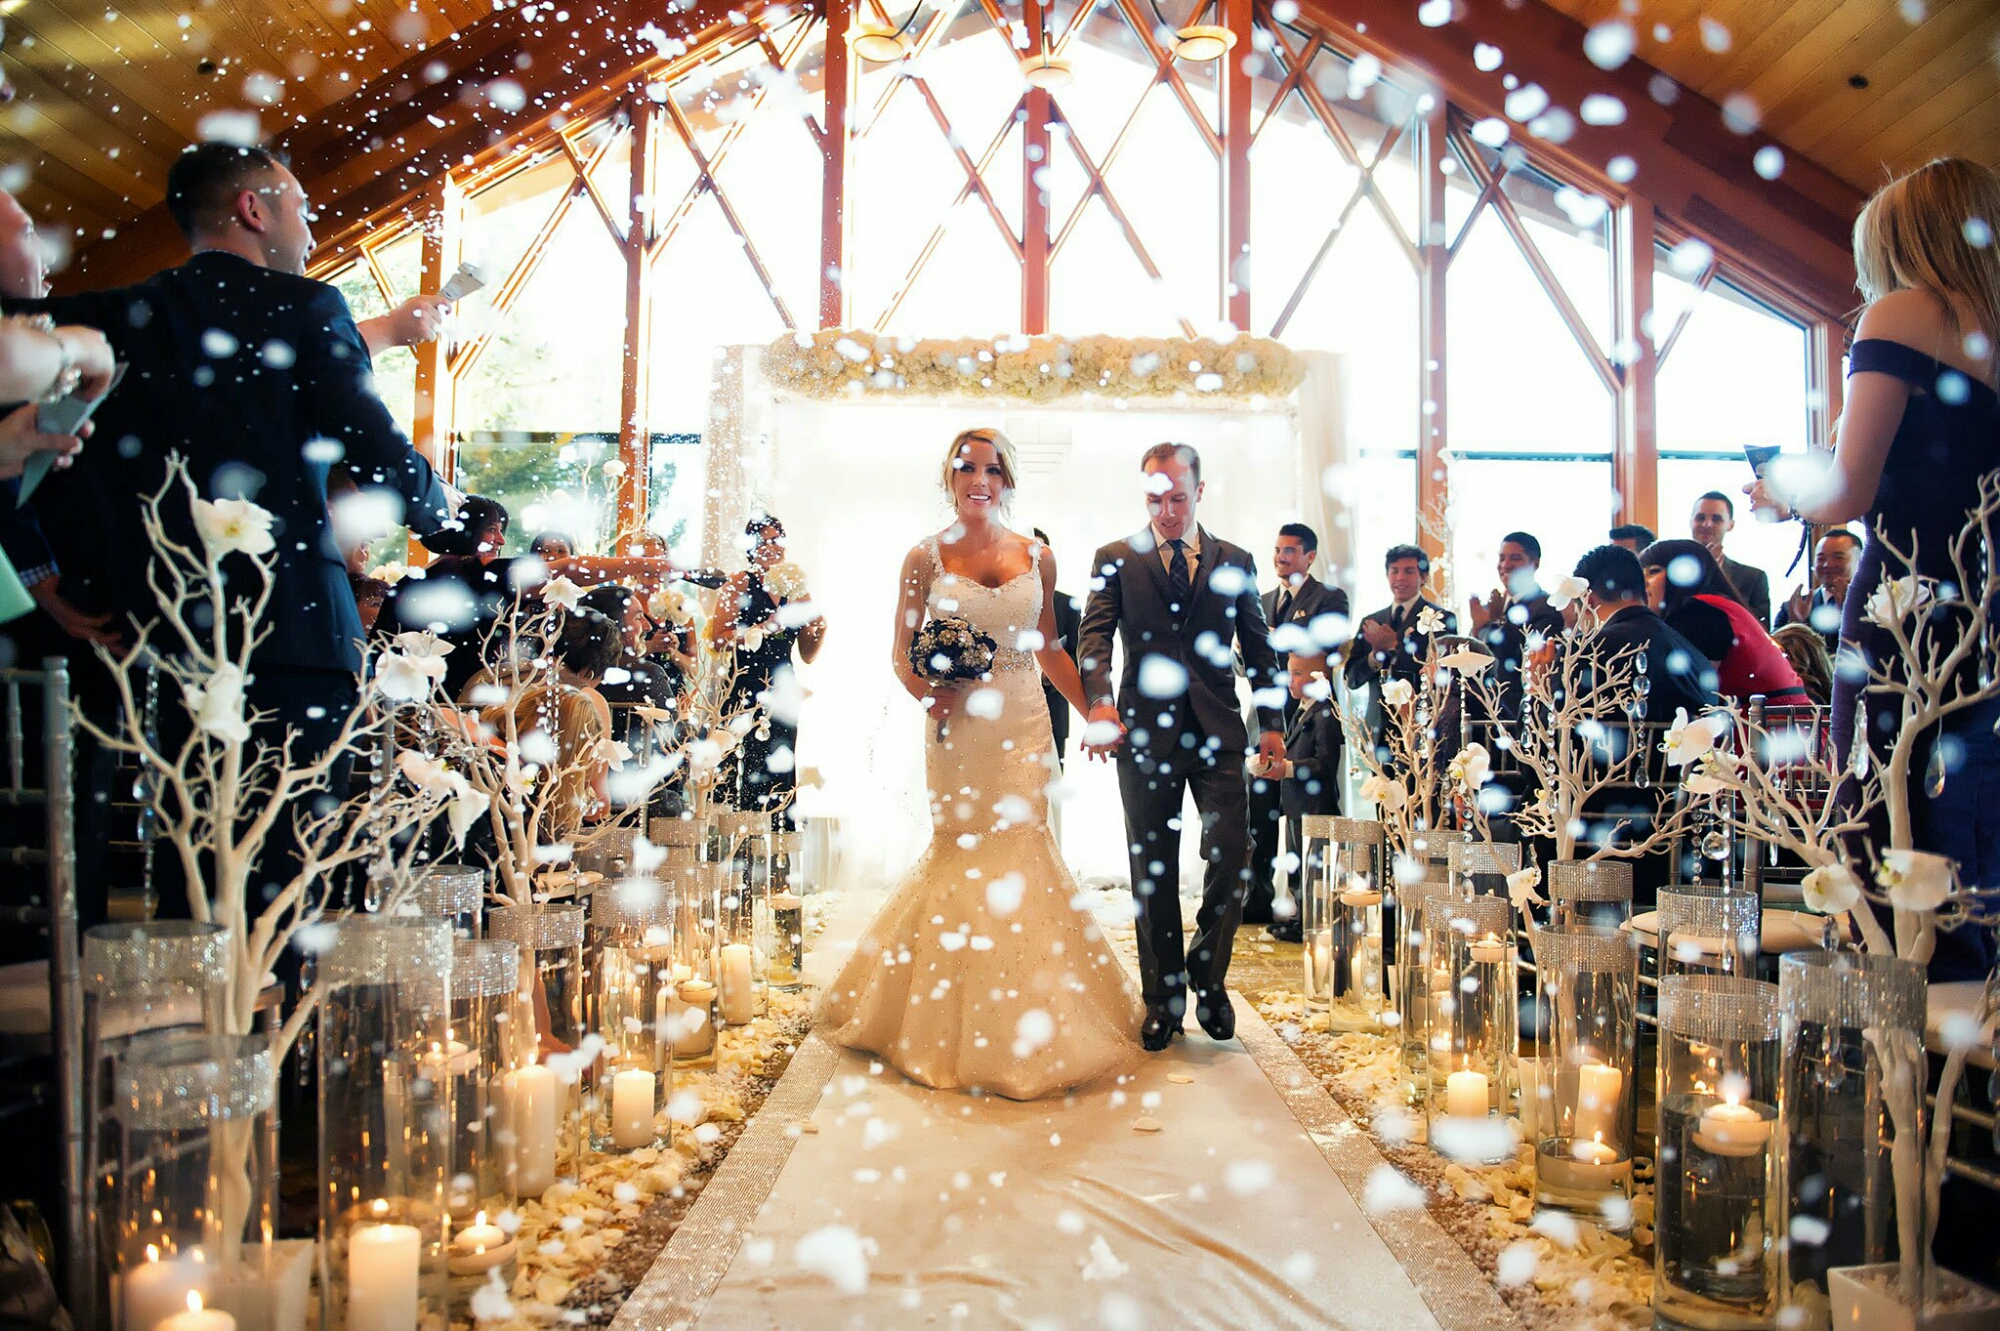 7 Magical Things Exclusive To A December Wedding